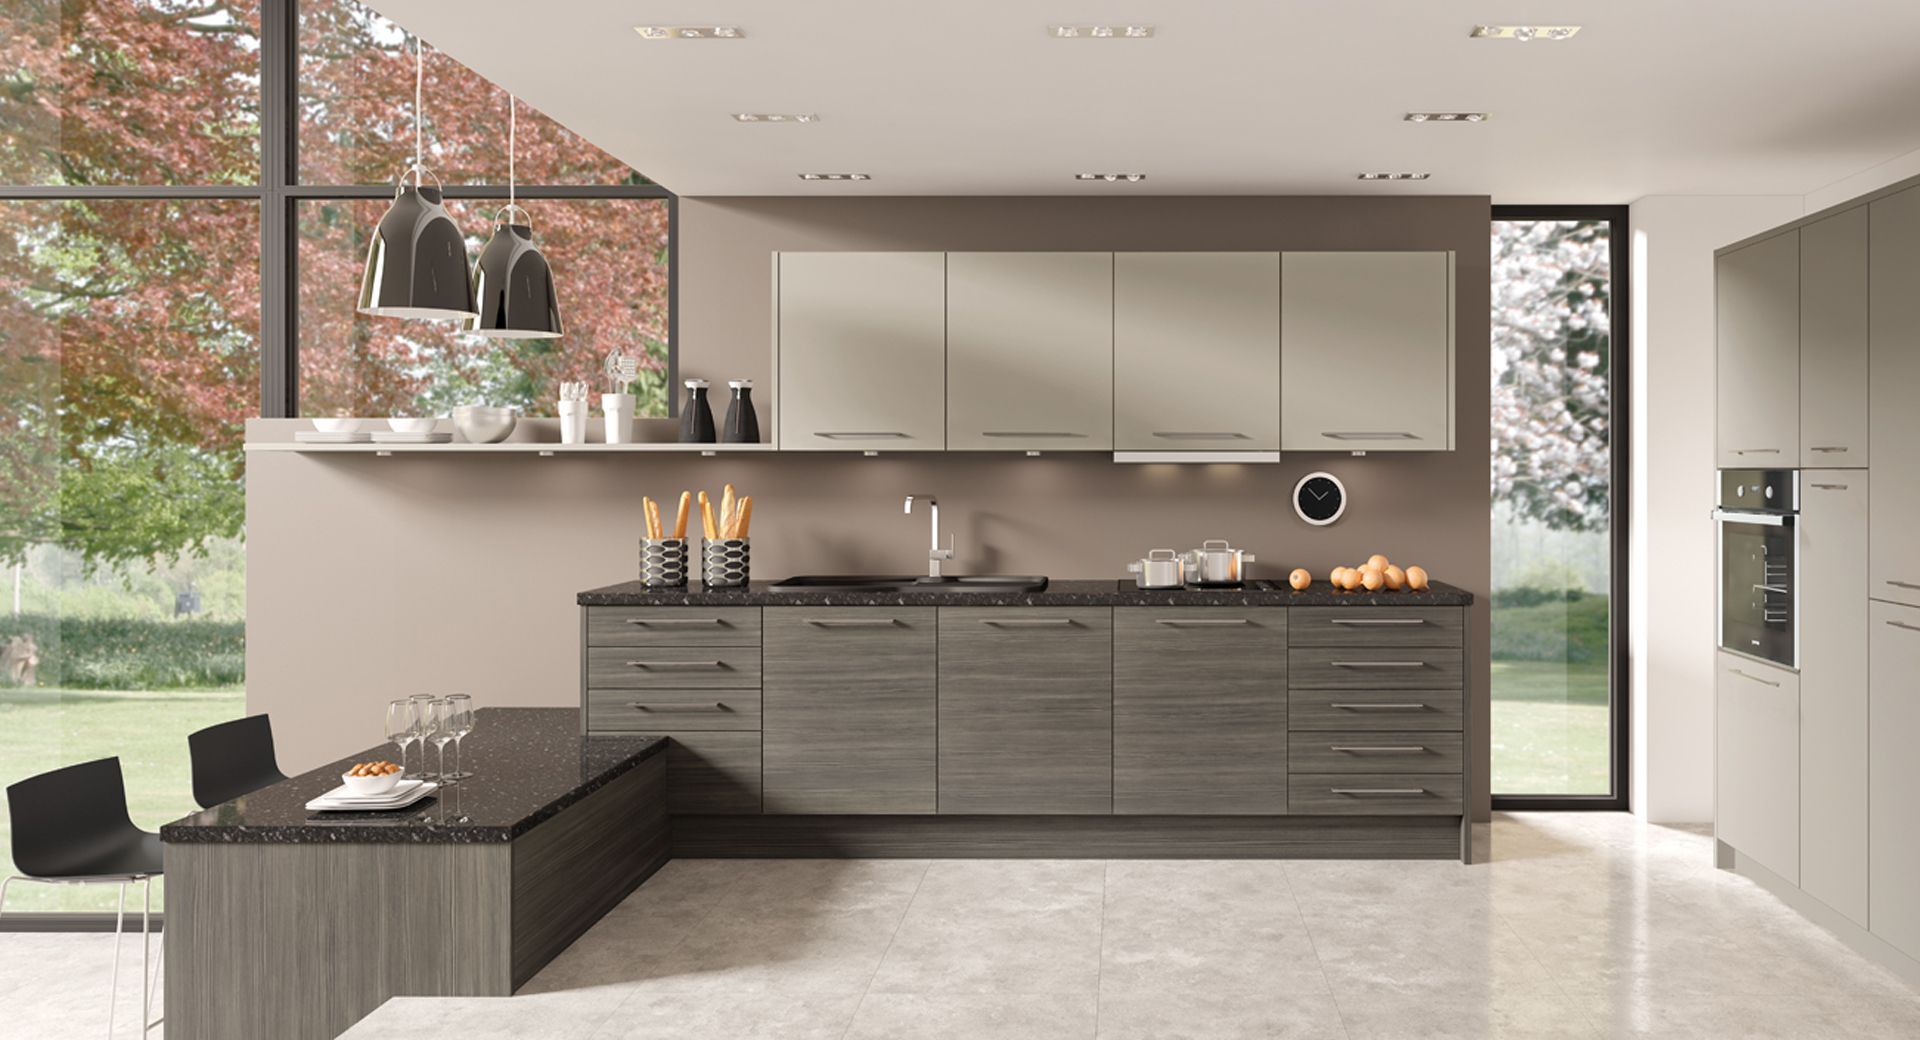 Kitwood Kitchens Lebsnon  Brands  Ikon  Collection  Baseone Amazing Kitchen Design Brands Decorating Design